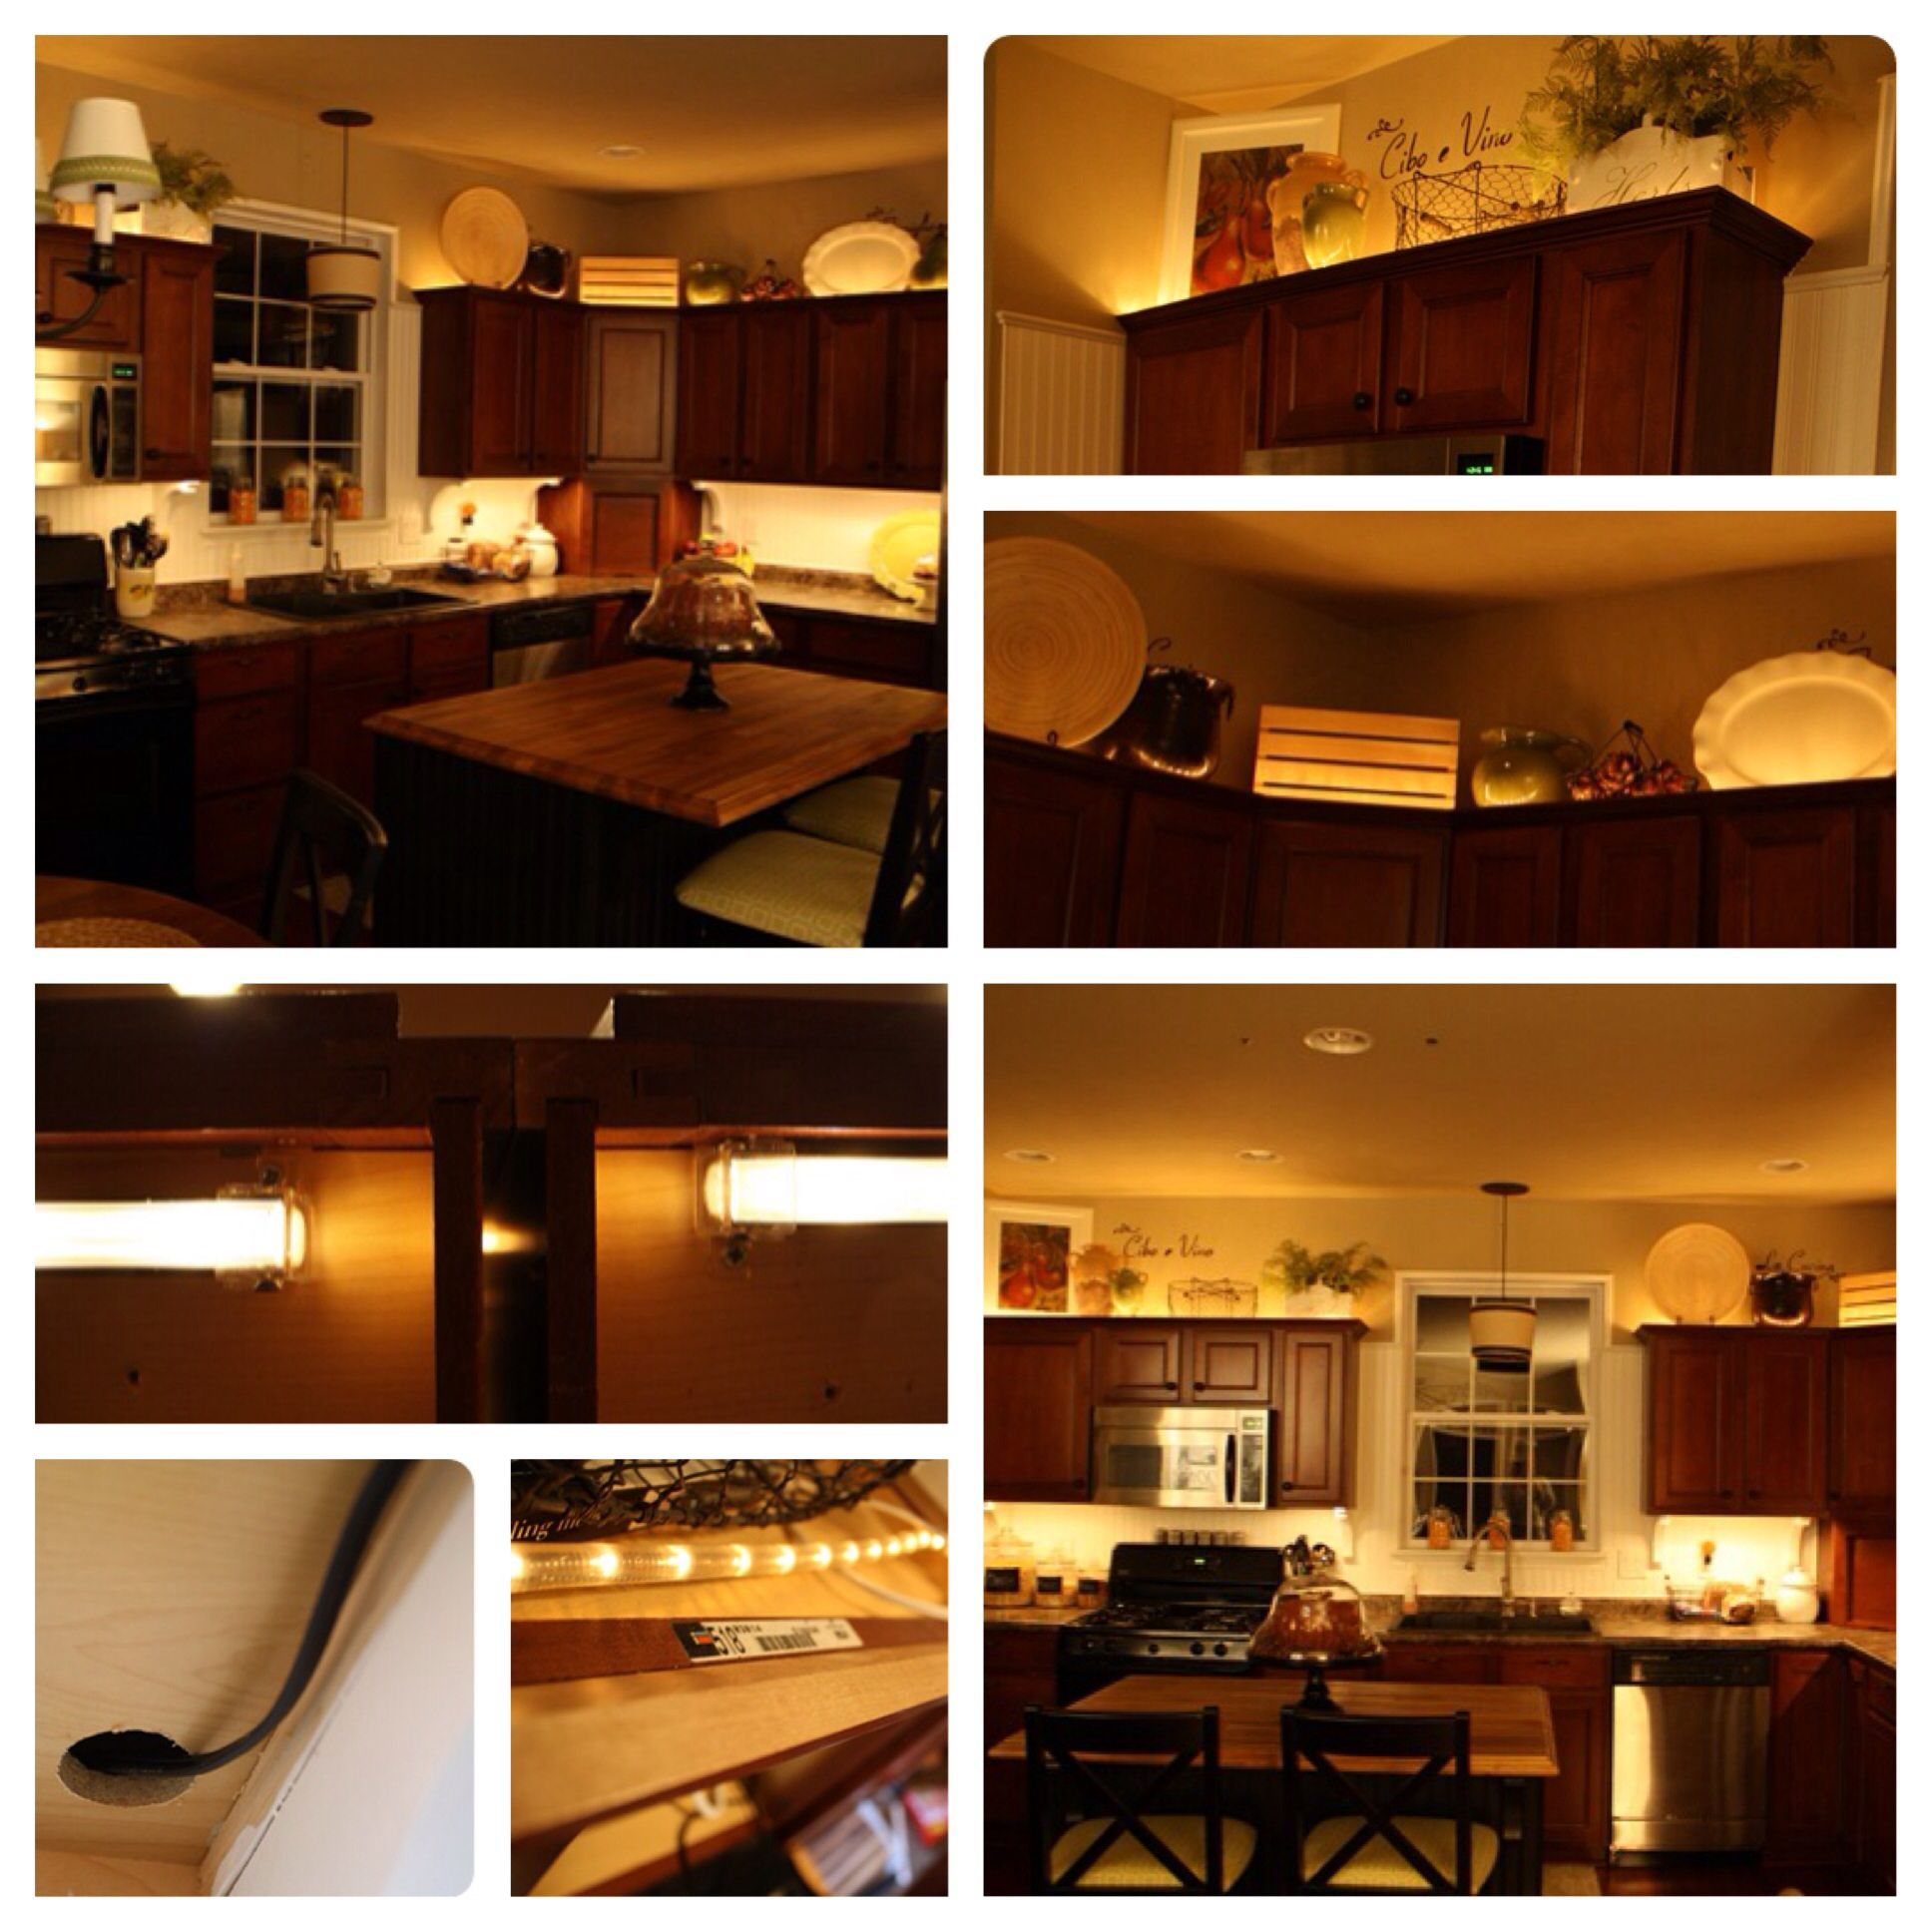 Adding lights above and below the cabinets DIY Christmas